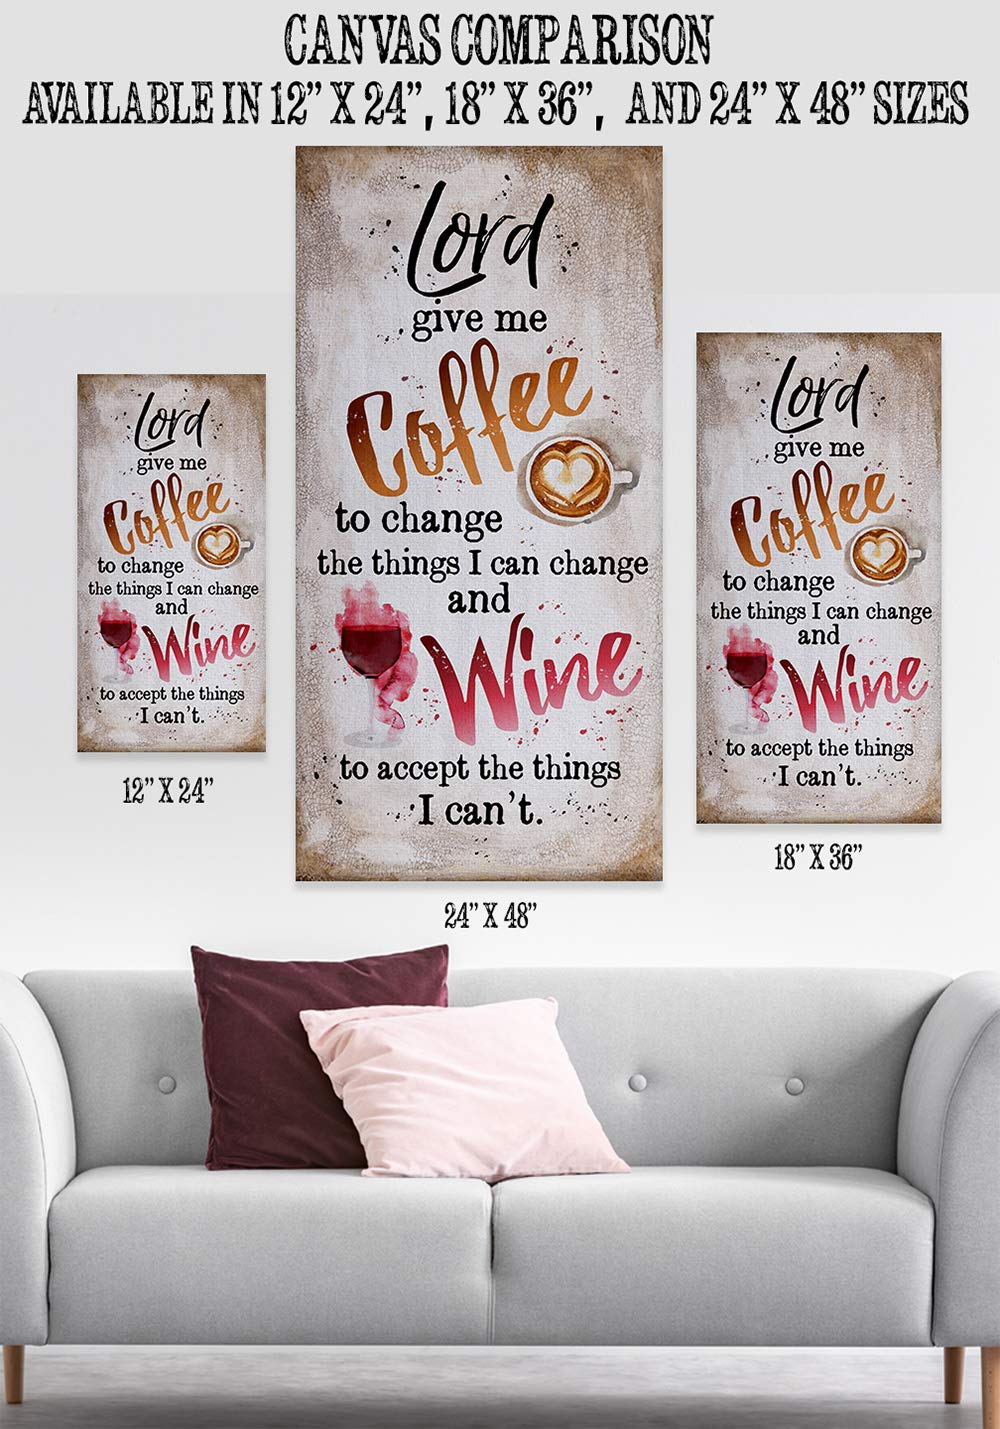 Kitchen and Dining Room Decor Give Me Coffee Makes a Great Housewarming Gift to Coffee and Wine Lovers Under $50 Large Canvas Wall Art Lord Stretched on a Heavy Wood Frame Ready to Hang